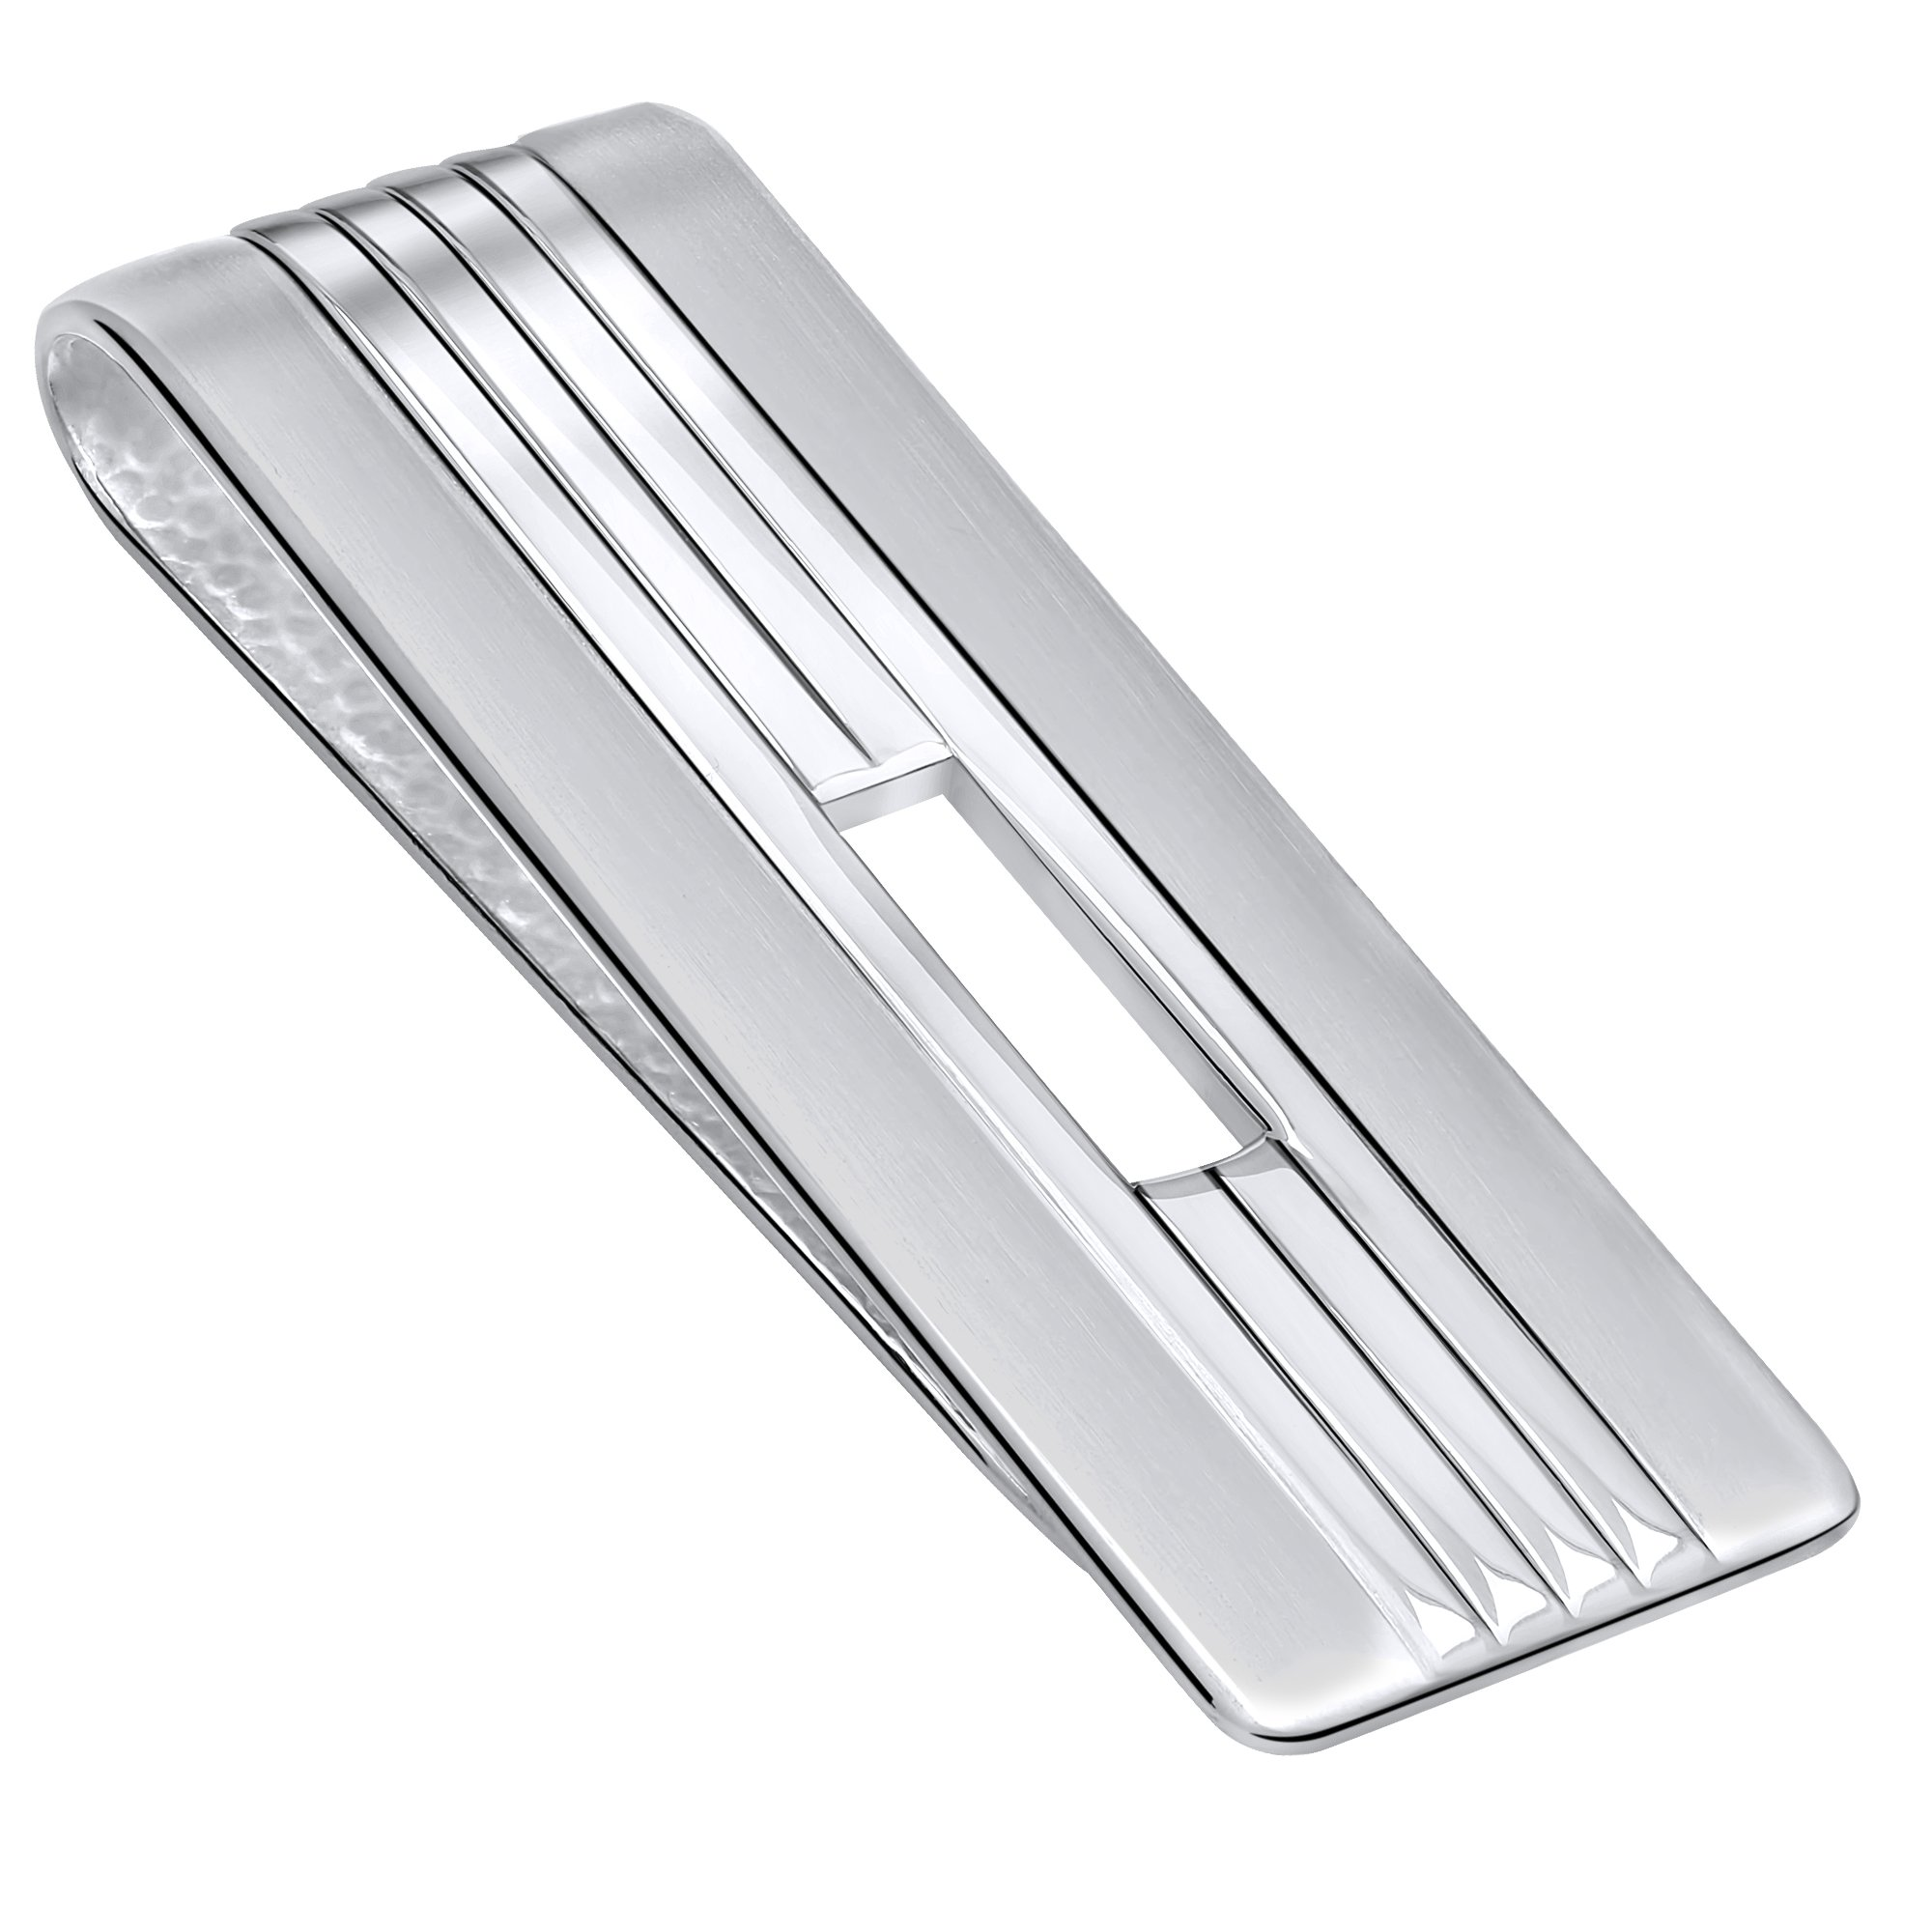 Sterling Silver .925 Money Clip Solid Striped Design with Satin Finish Accents, Pebbled Underside, Designed and Made In Italy. By Sterling Manufacturers